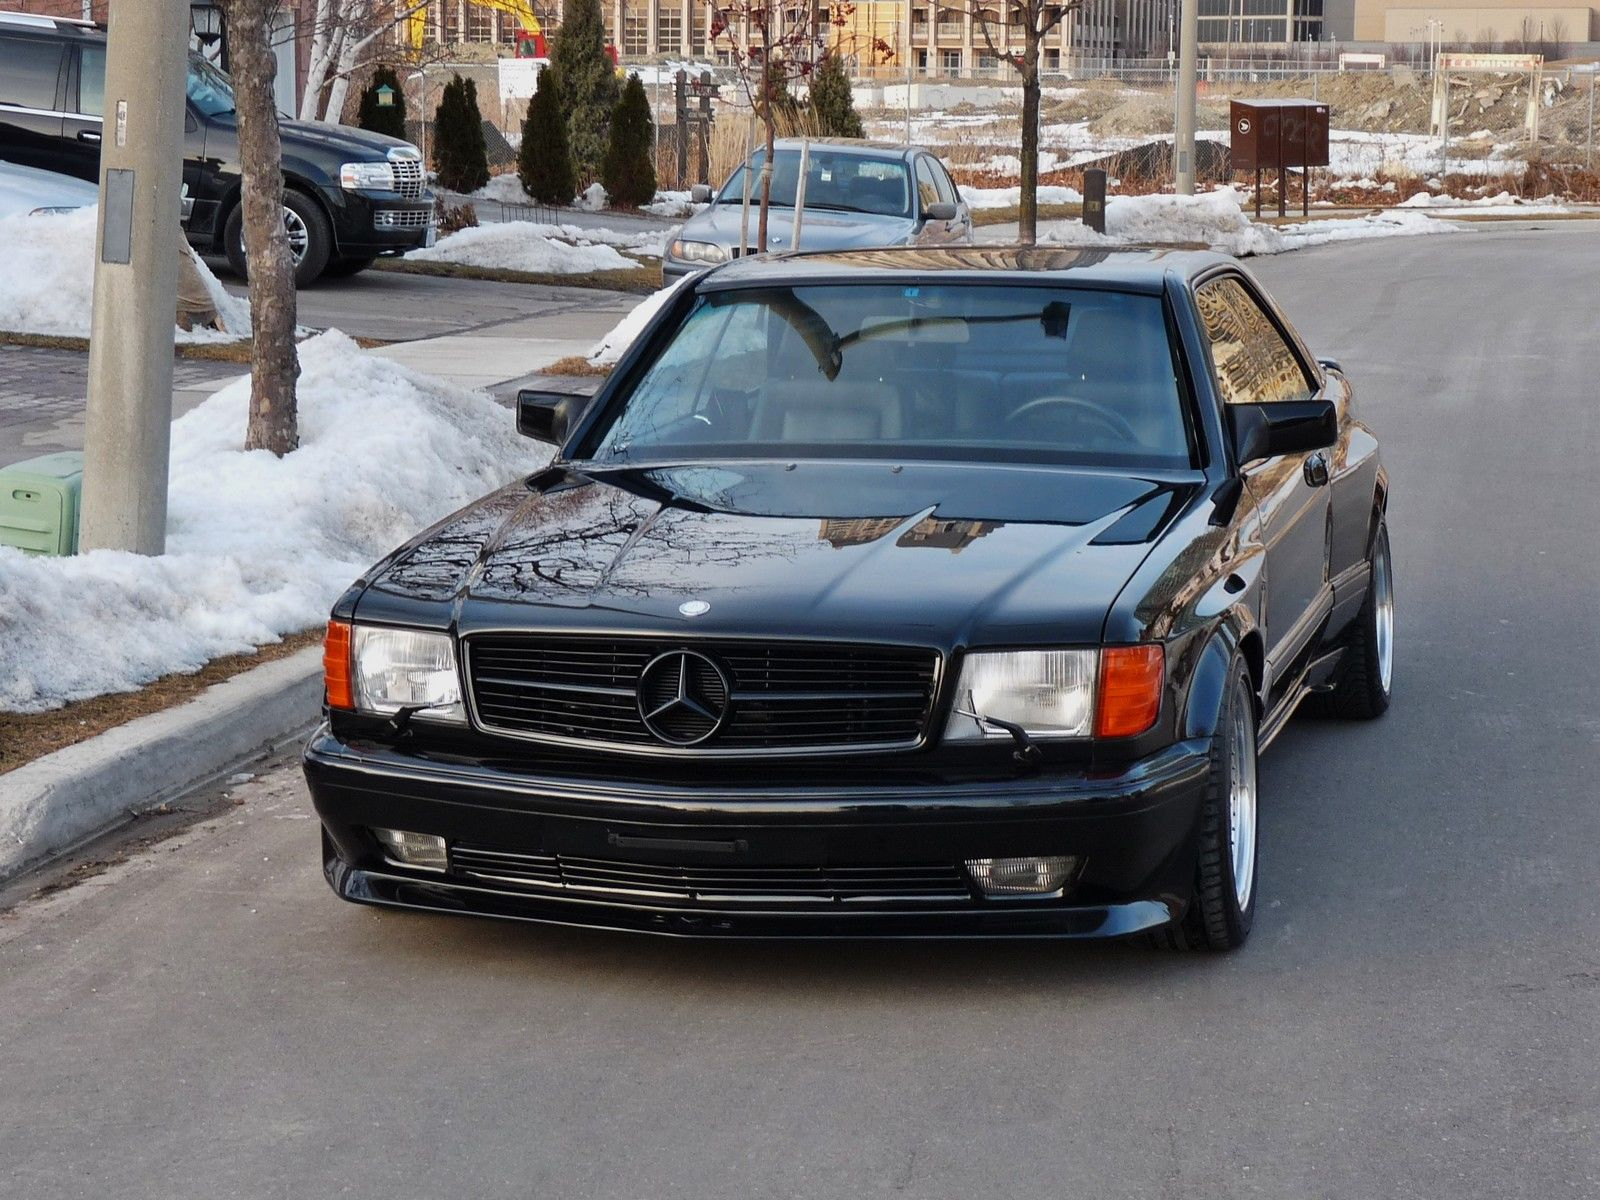 hight resolution of 1990 mercedes benz 560sec amg 6 0 widebody 1600 x 1200 mercedes benz mercedes transmission